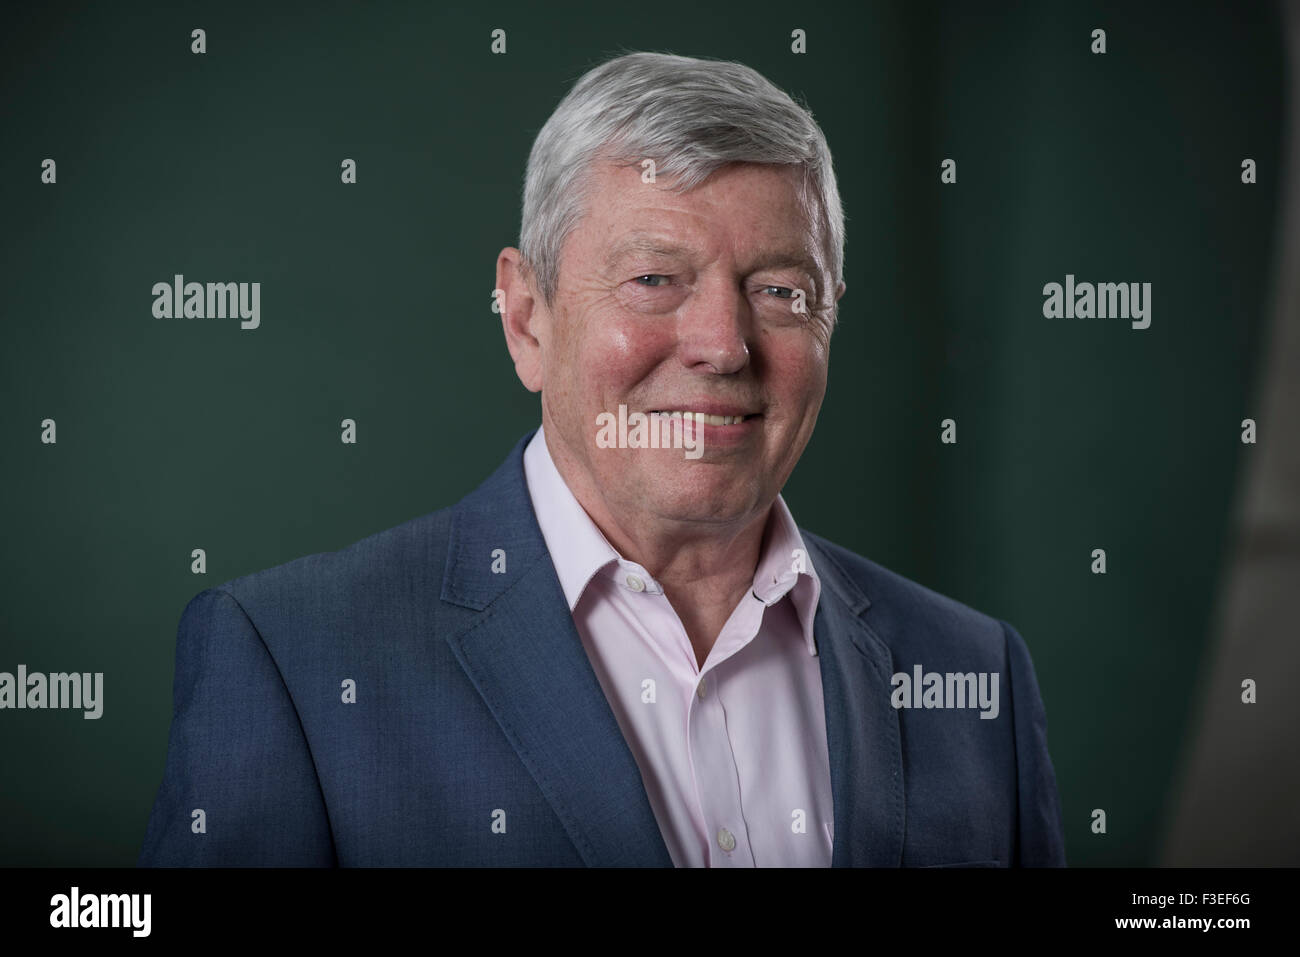 British Labour Party politician Alan Johnson. Stock Photo